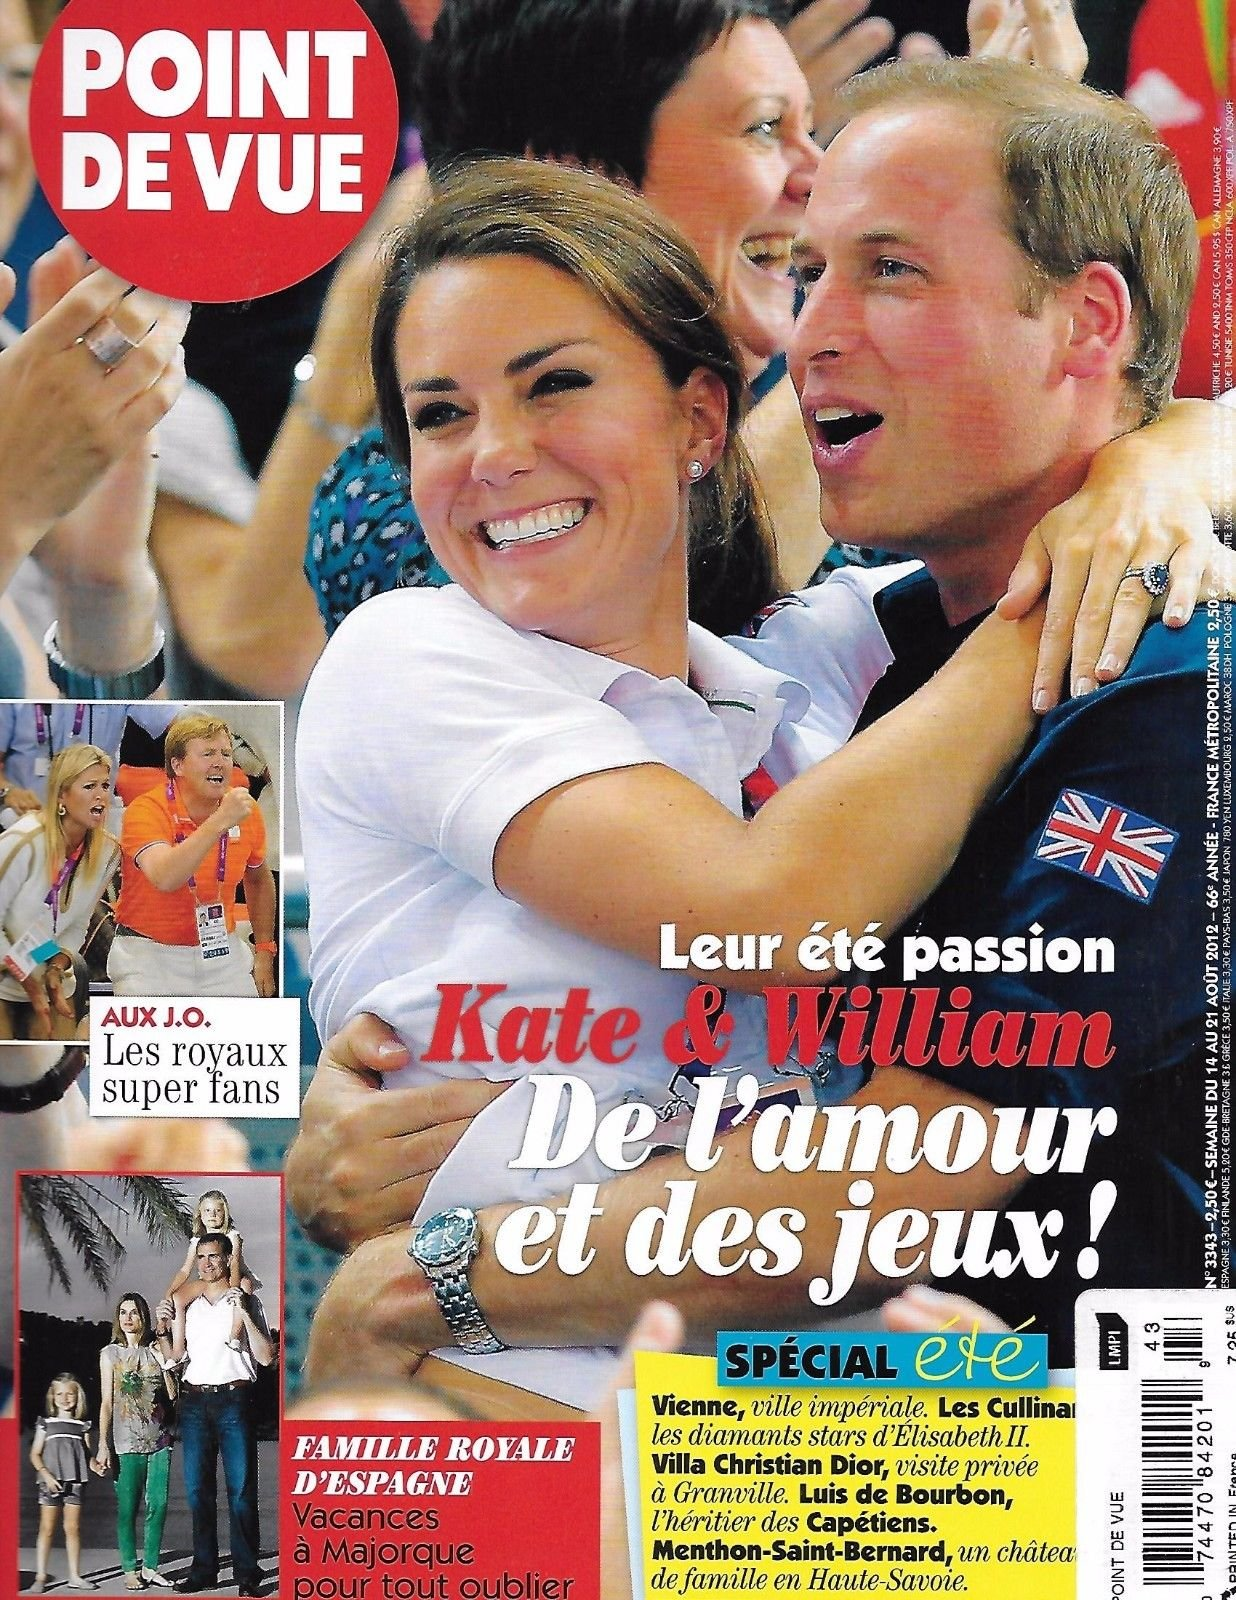 Download Pointe De Vue magazine August 14 2012 Kate Middleton PDF